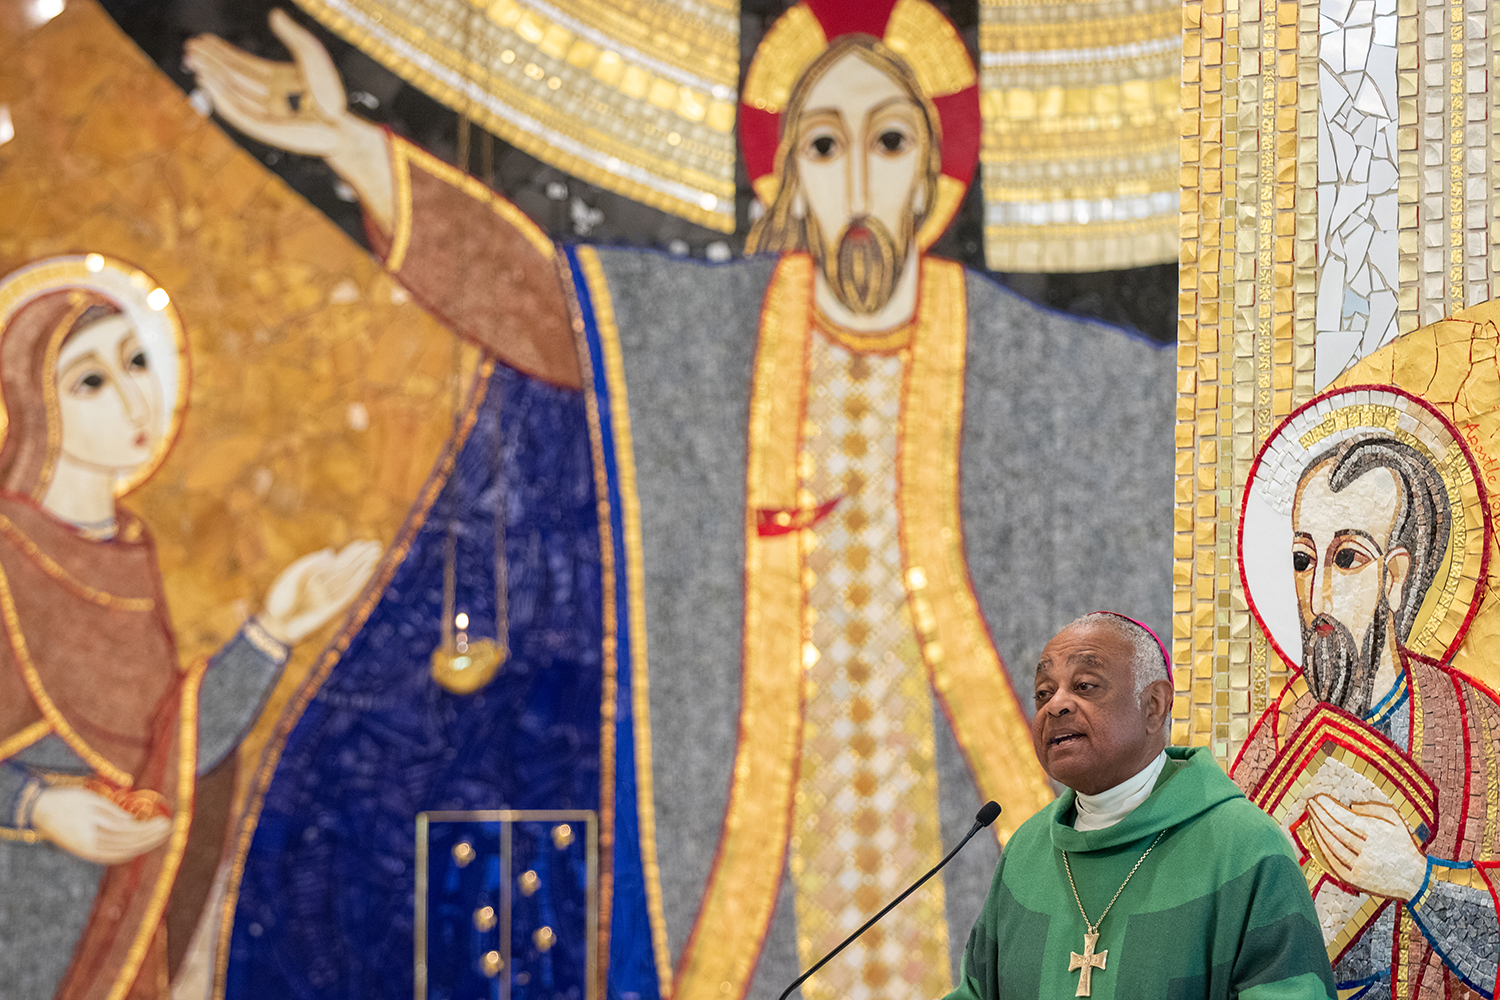 Archbishop Wilton Gregory of Washington preaching at the liturgy celebrating the Installation of Officers of the DC State Council of the Knights of Columbus.